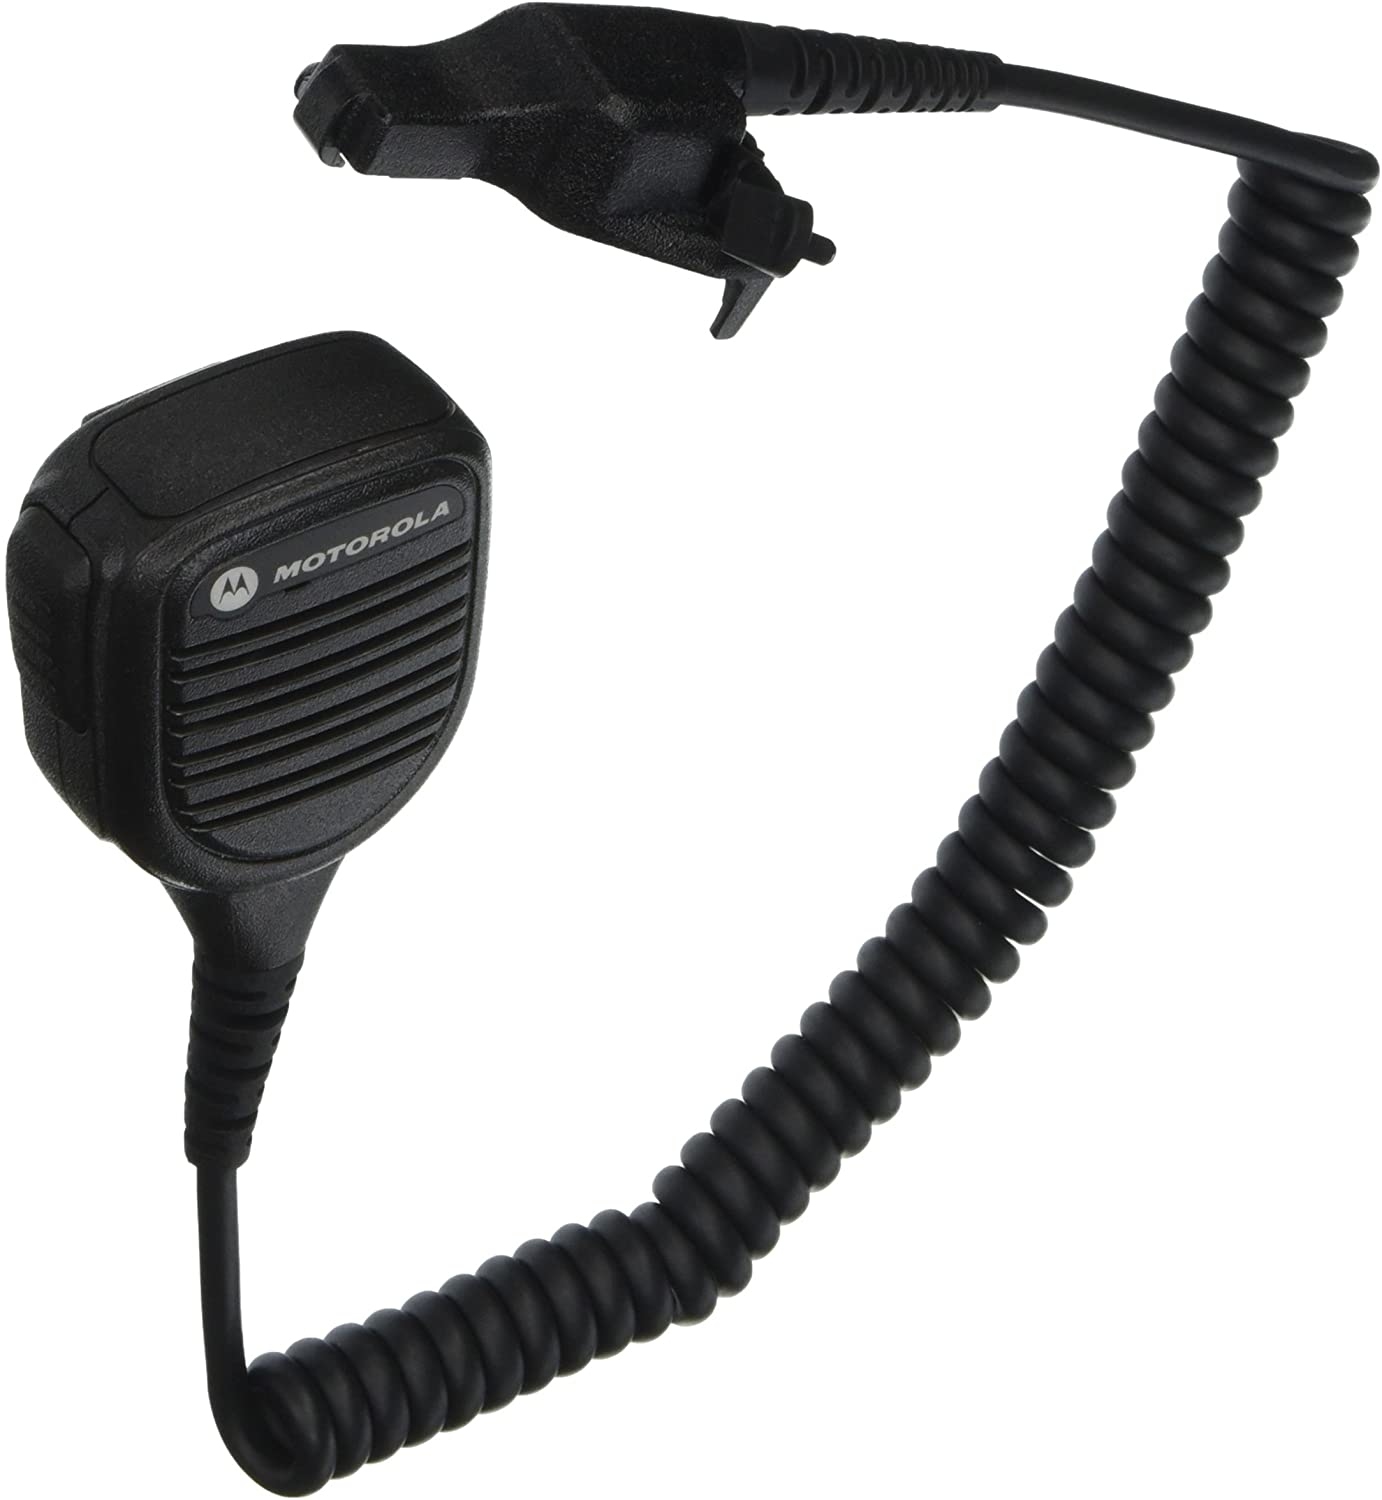 Motorola Original OEM PMMN4051 PMMN4051B Windporting Remote Speaker Microphone with 3.5mm Audio Jack, IP55 Water Resistant, Intrinsic Safety Standard FM